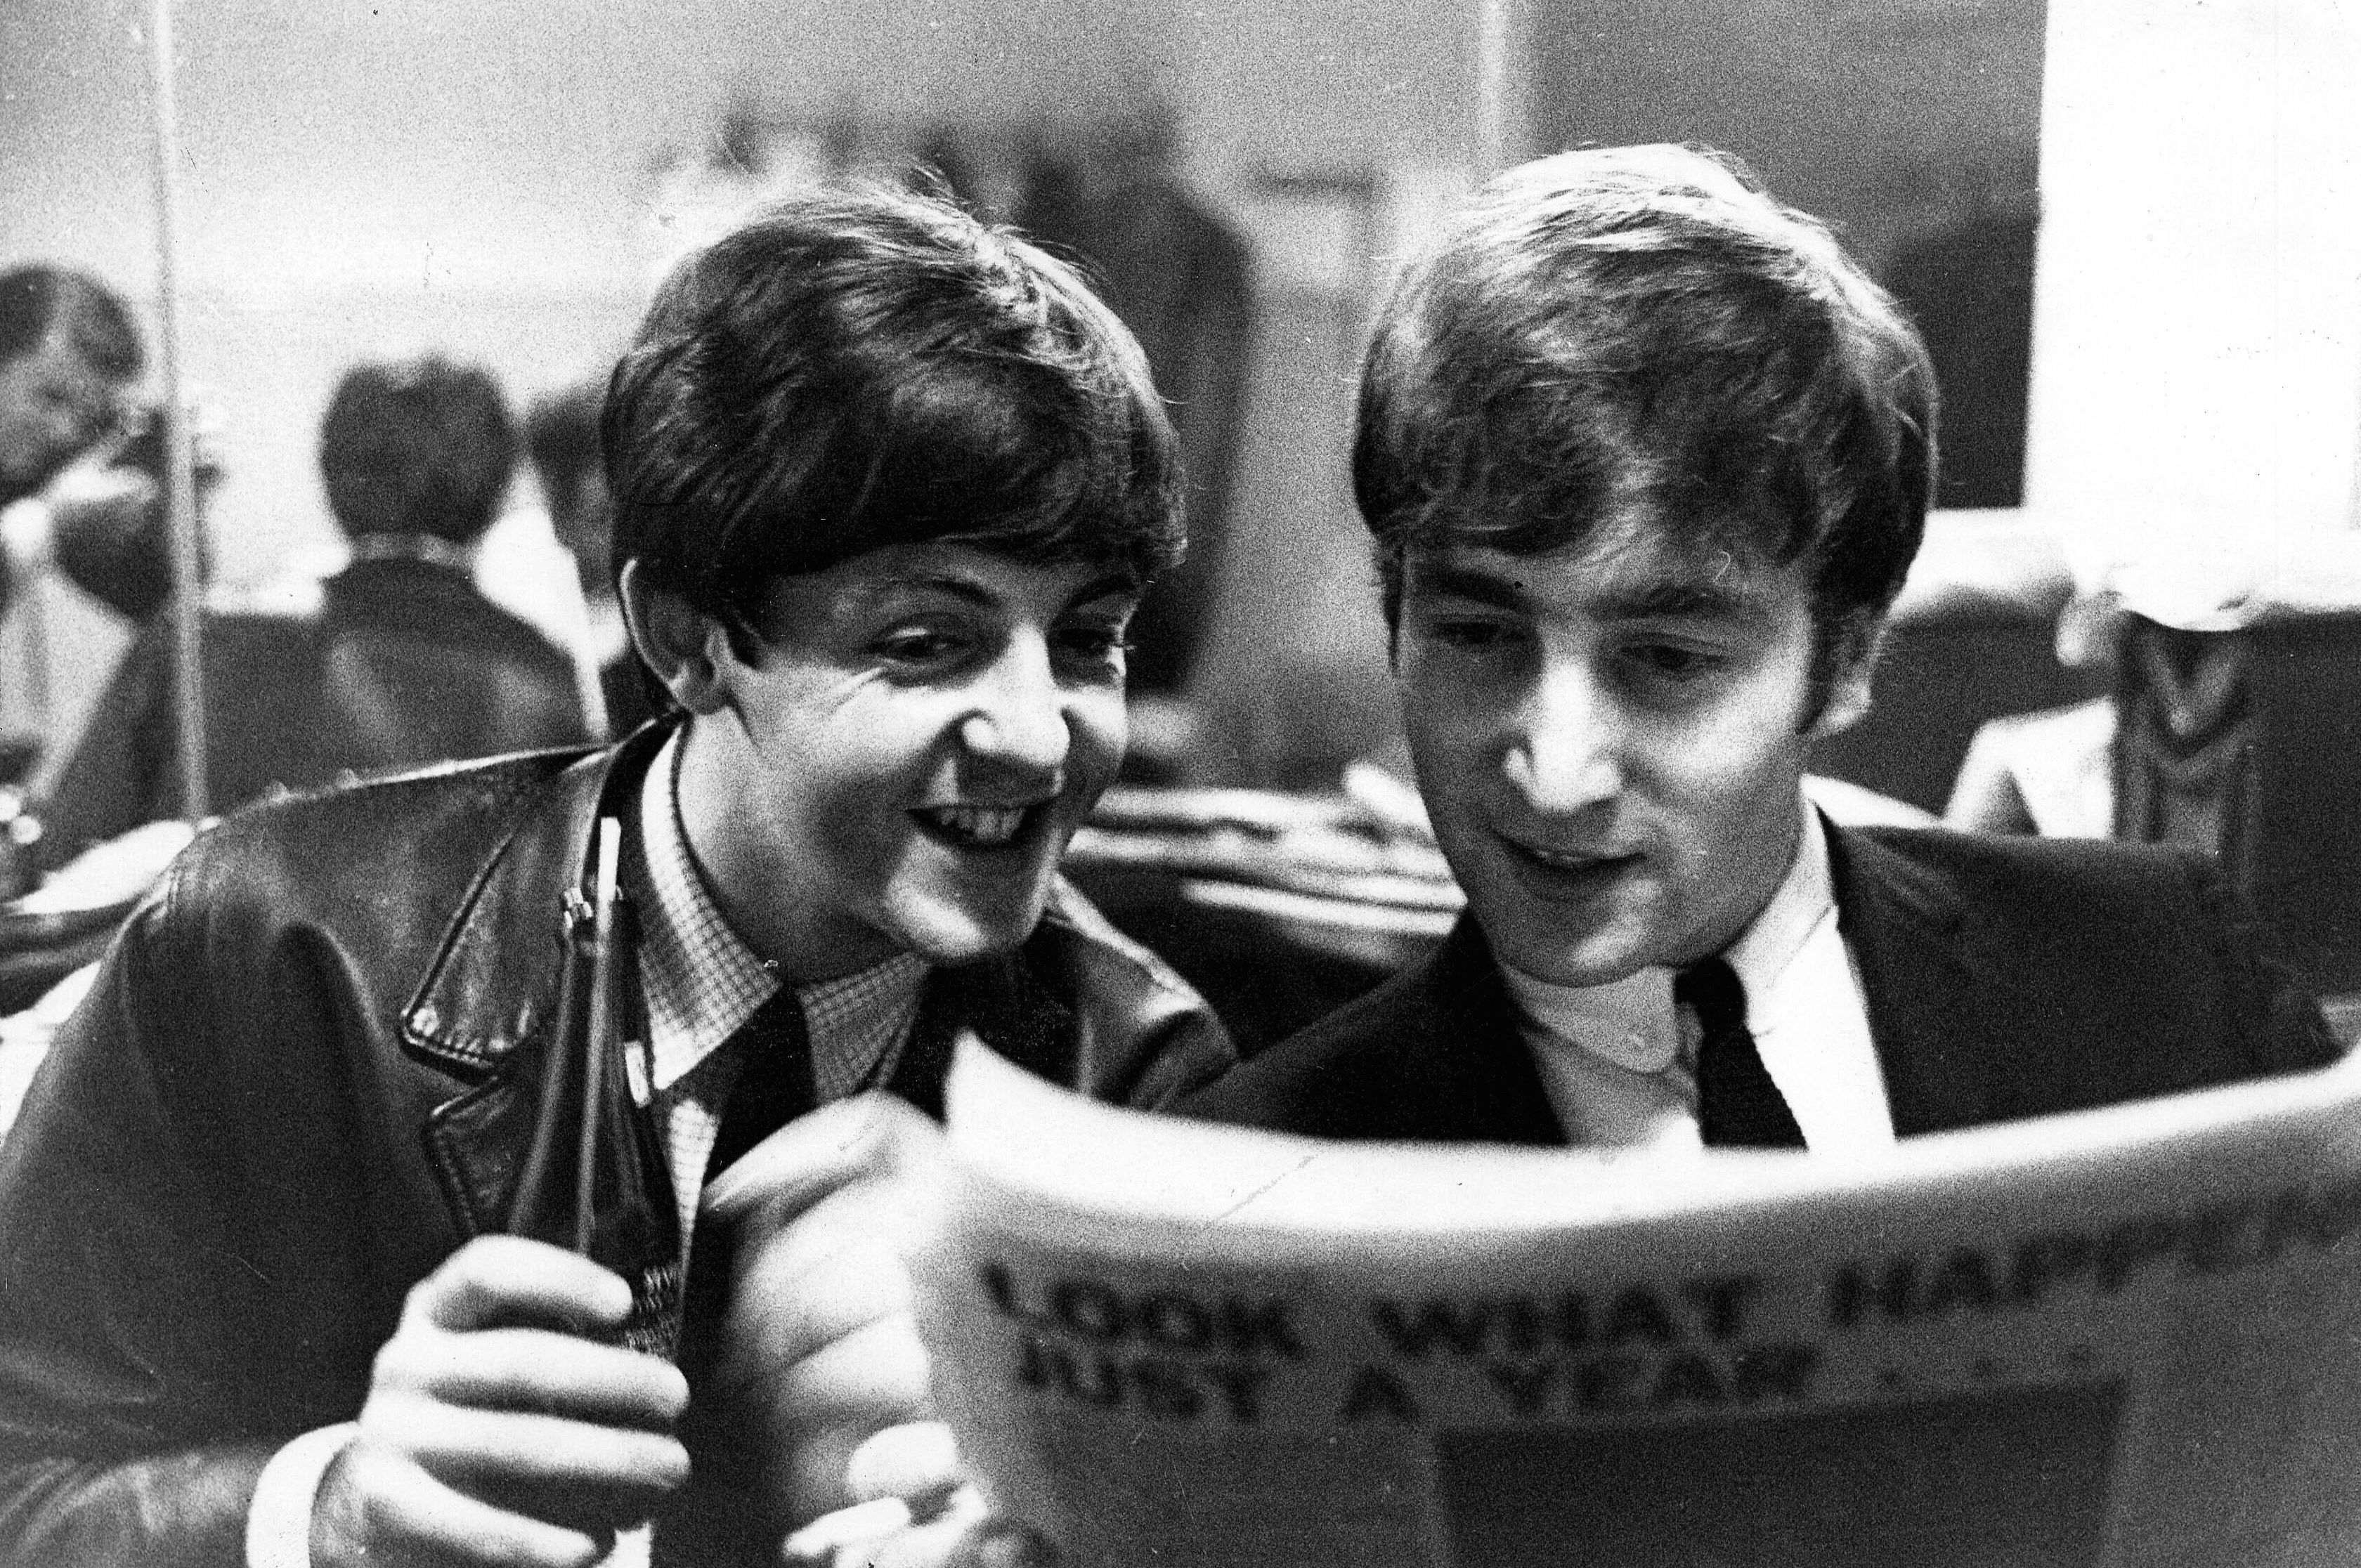 PAUL MCCARTNEY AND JOHN LENNON READING NEWSPAPER - 1963